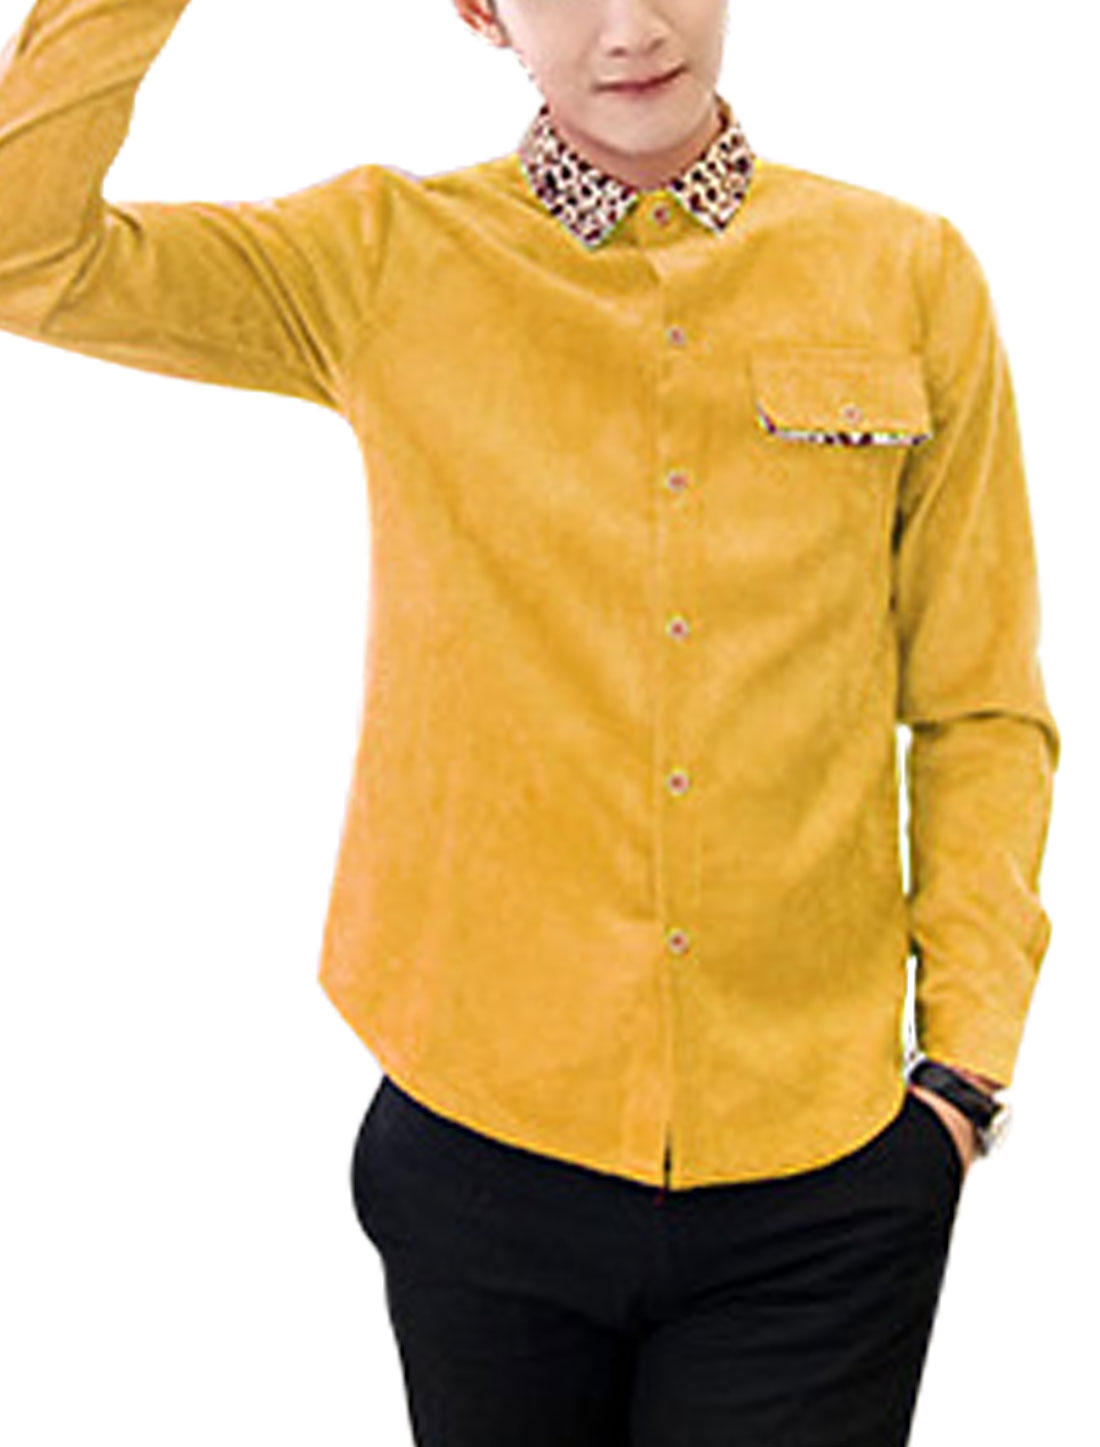 Men Point Collar Single Breasted Slim Fit Corduroy Shirt Yellow M